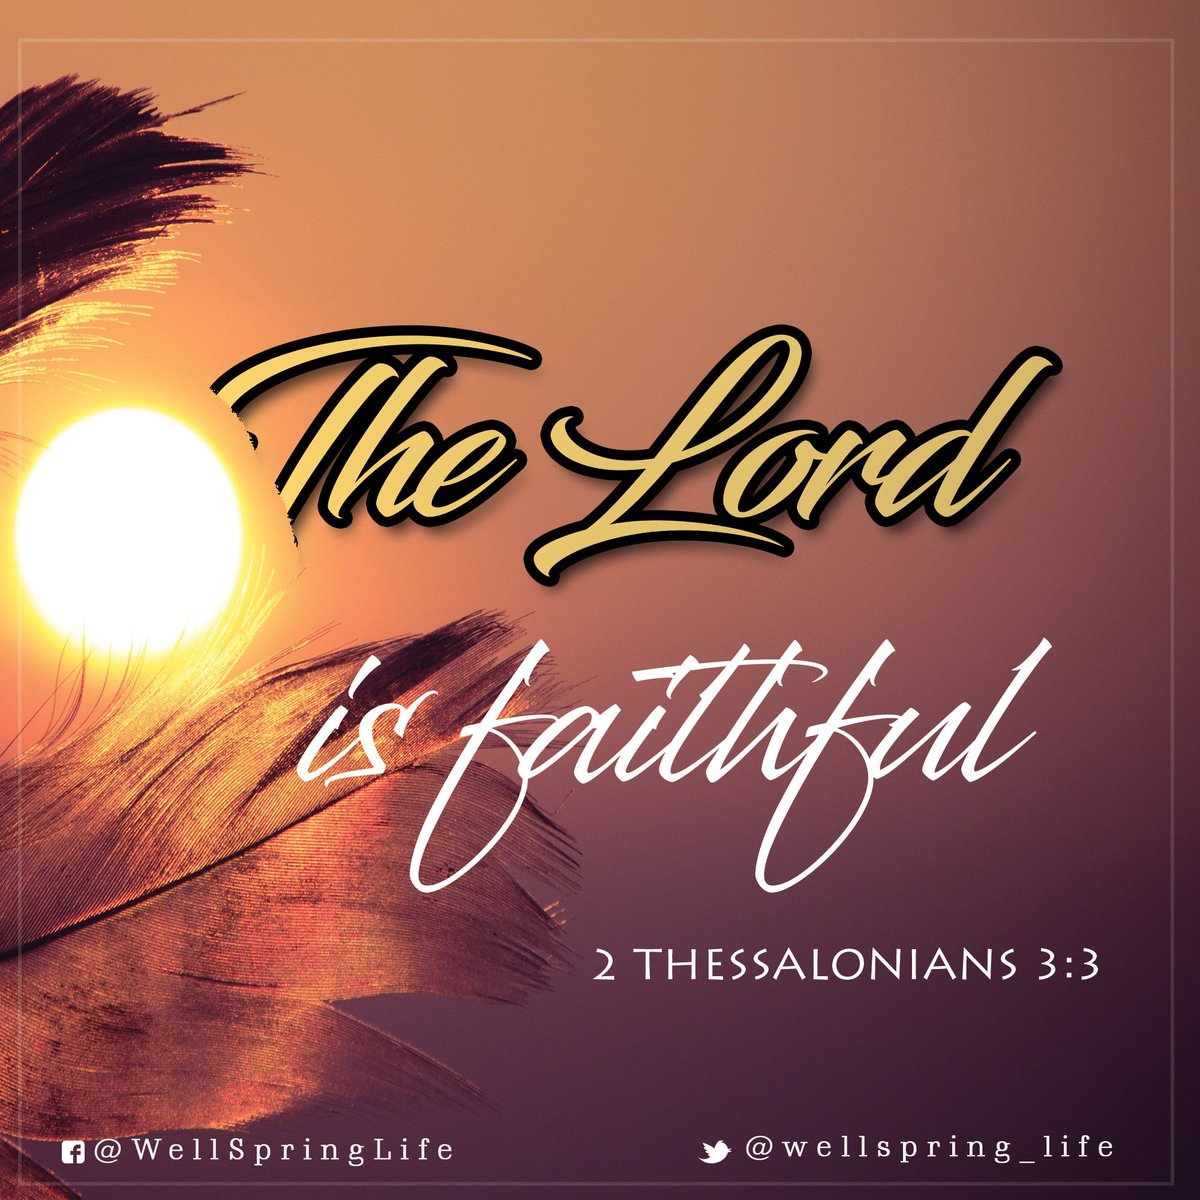 But the Lord is faithful, who will establish you and guard you from the evil one. 2 Thessalonians 3:3 #FridayThoughts #Fridaymotivation #JesusSaves<br>http://pic.twitter.com/ZXKJ7Lcwsu